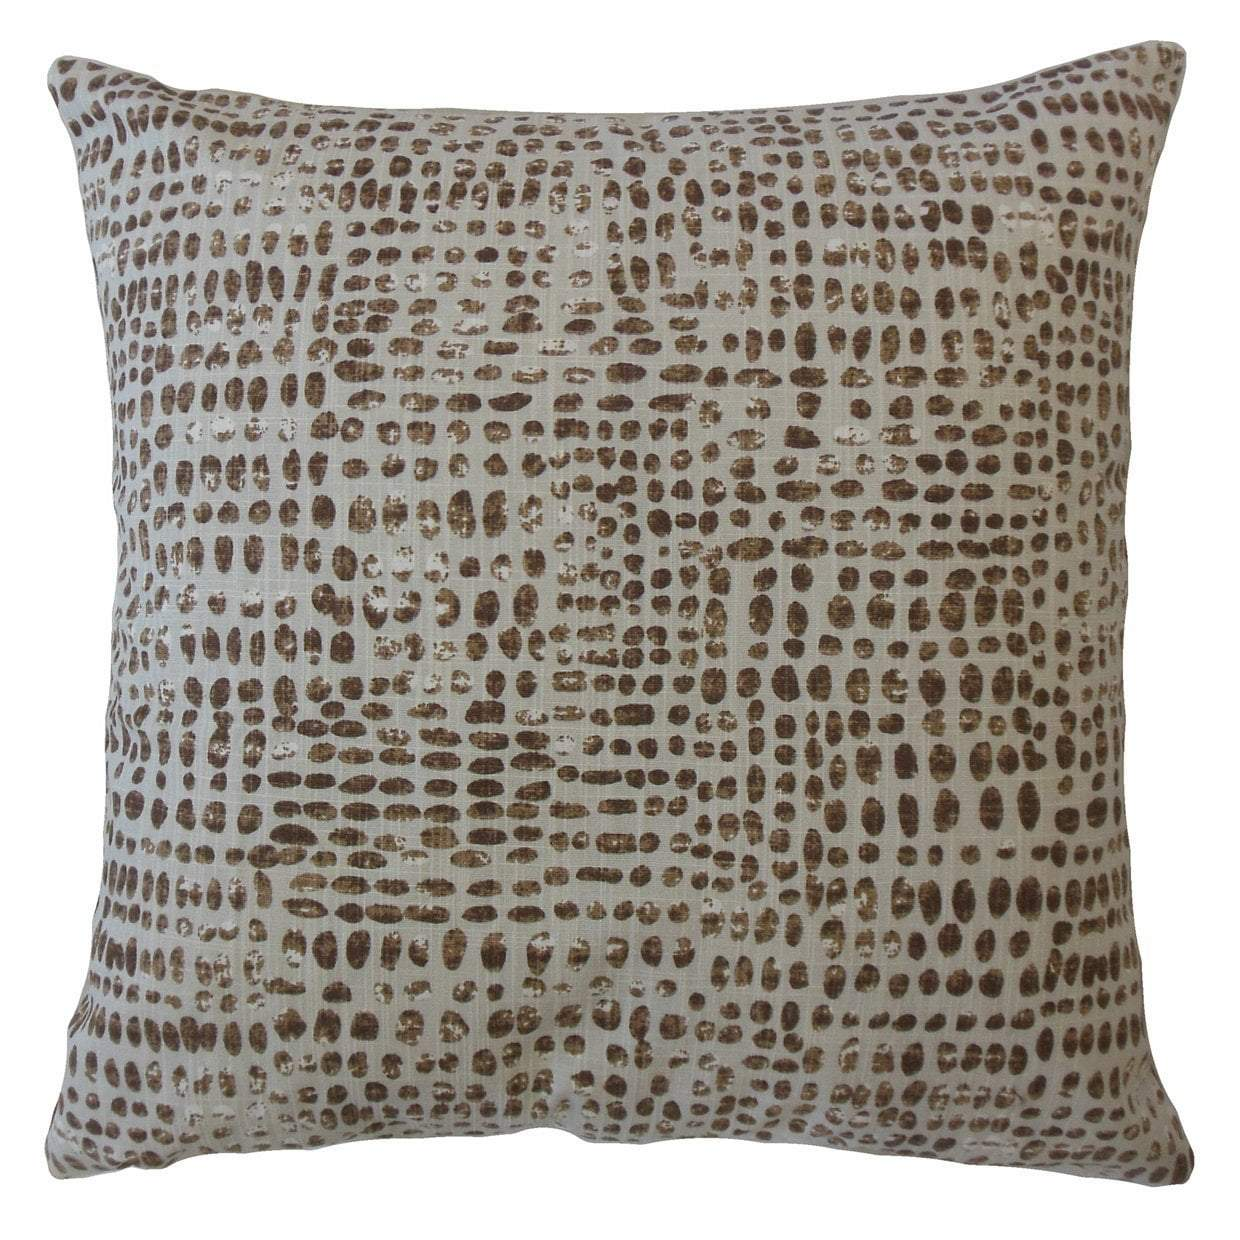 Brown Cotton Polka Dot Contemporary Throw Pillow Cover